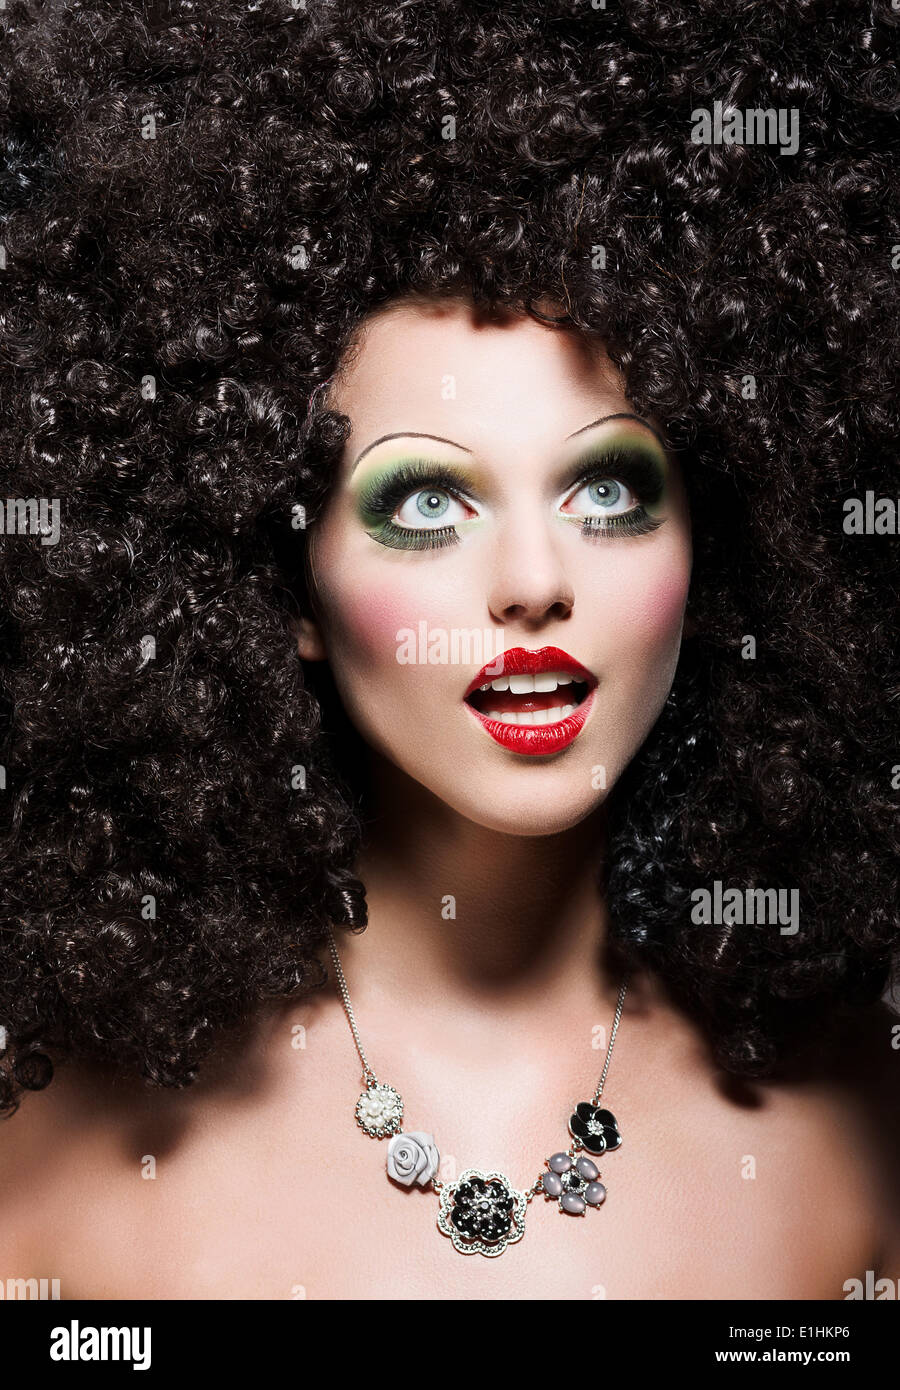 Creativity. Theatrical Emotions. Woman with Fantastic Coiffure looks like Doll - Stock Image